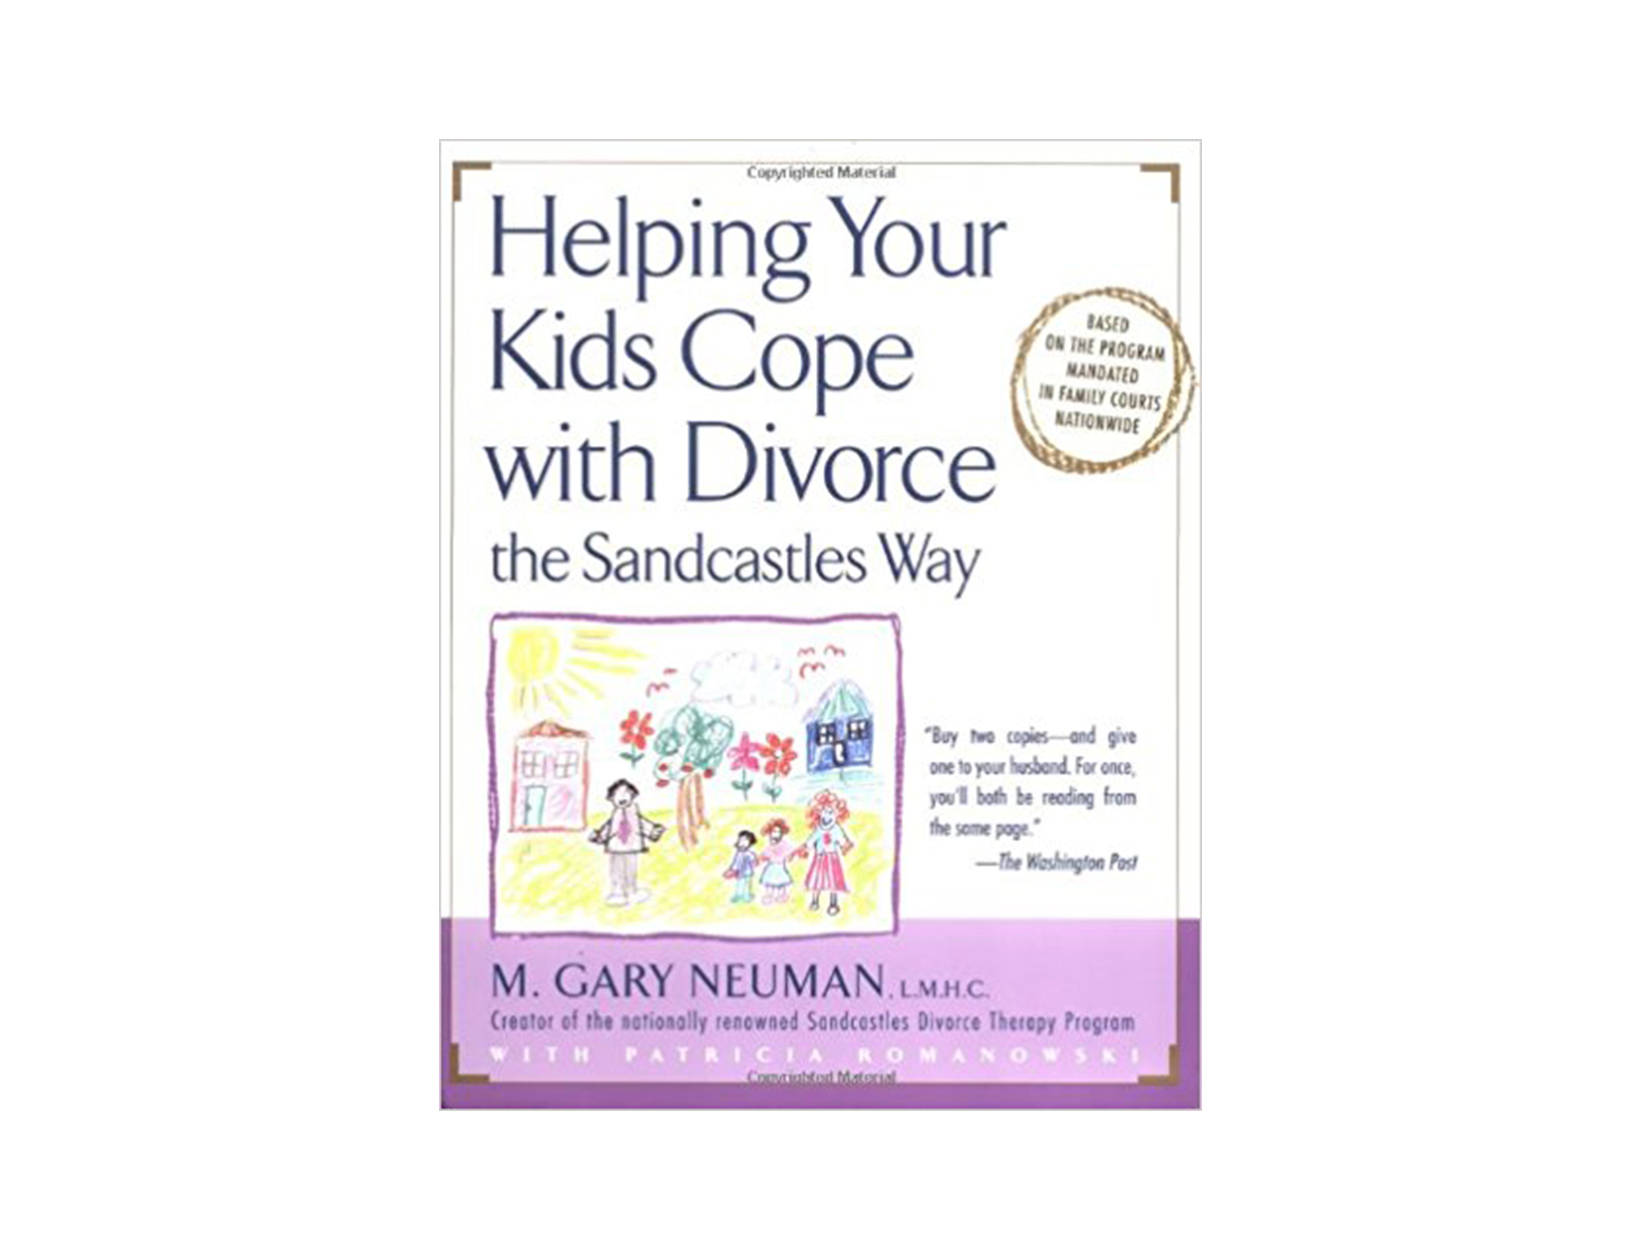 Helping Your Kids Cope with<br>Divorce the Sand Castles Way